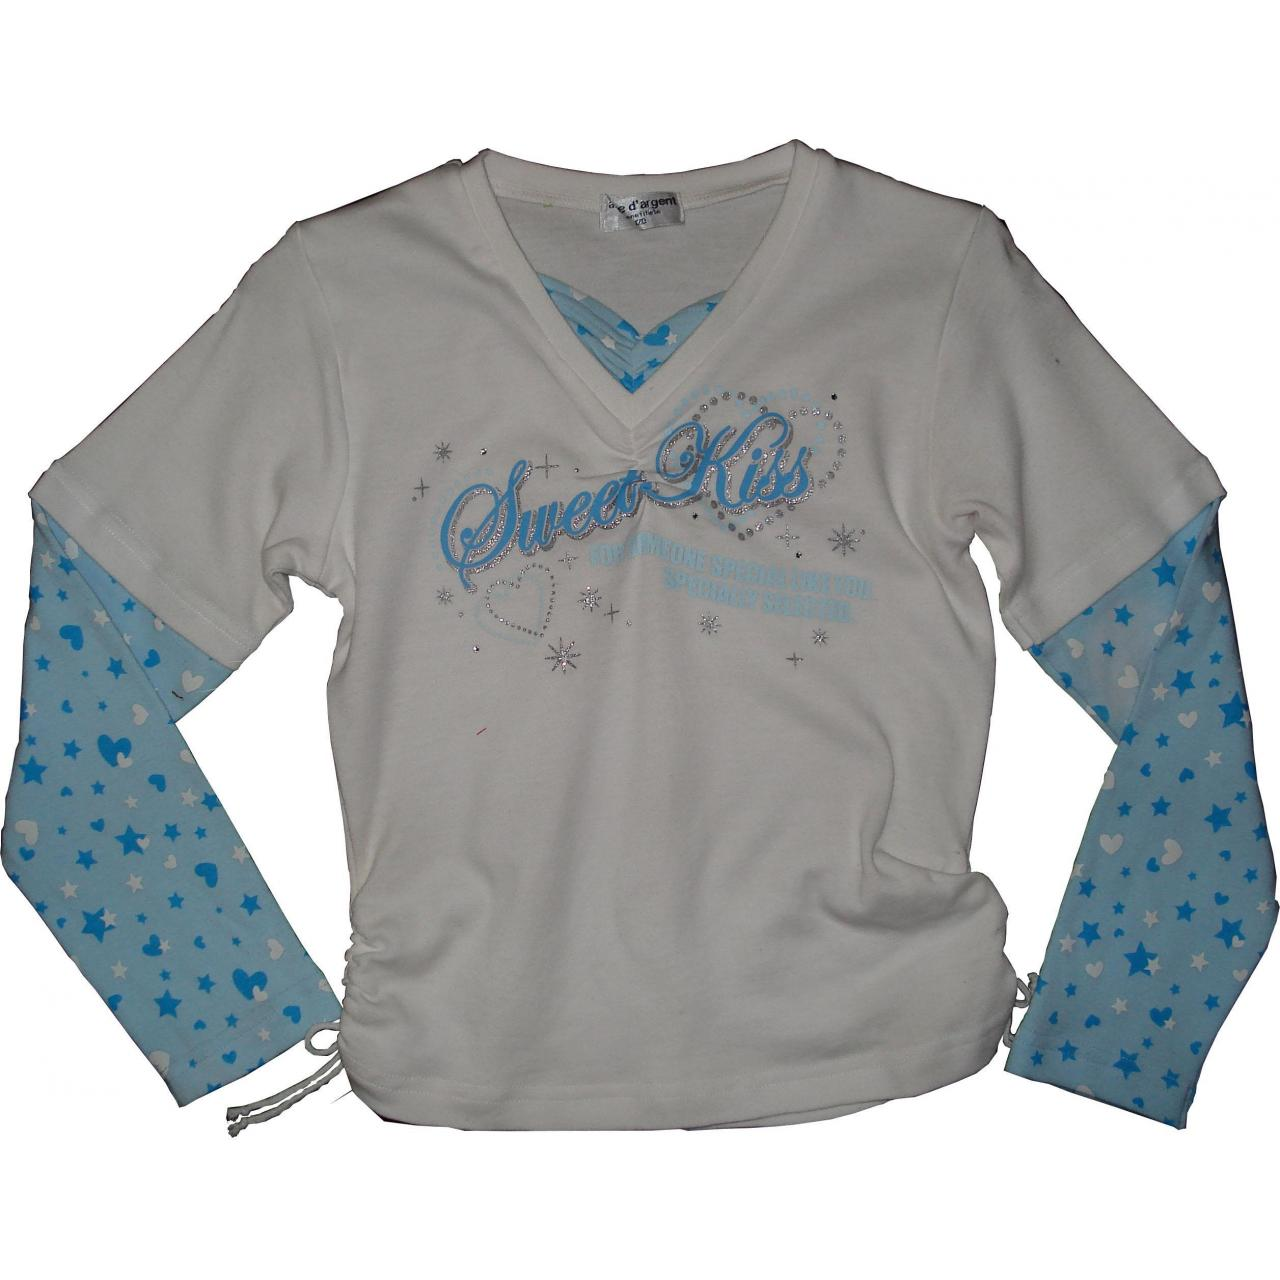 Kids T-SHIRT ProductNO.:Pro20112911390 Manufactures